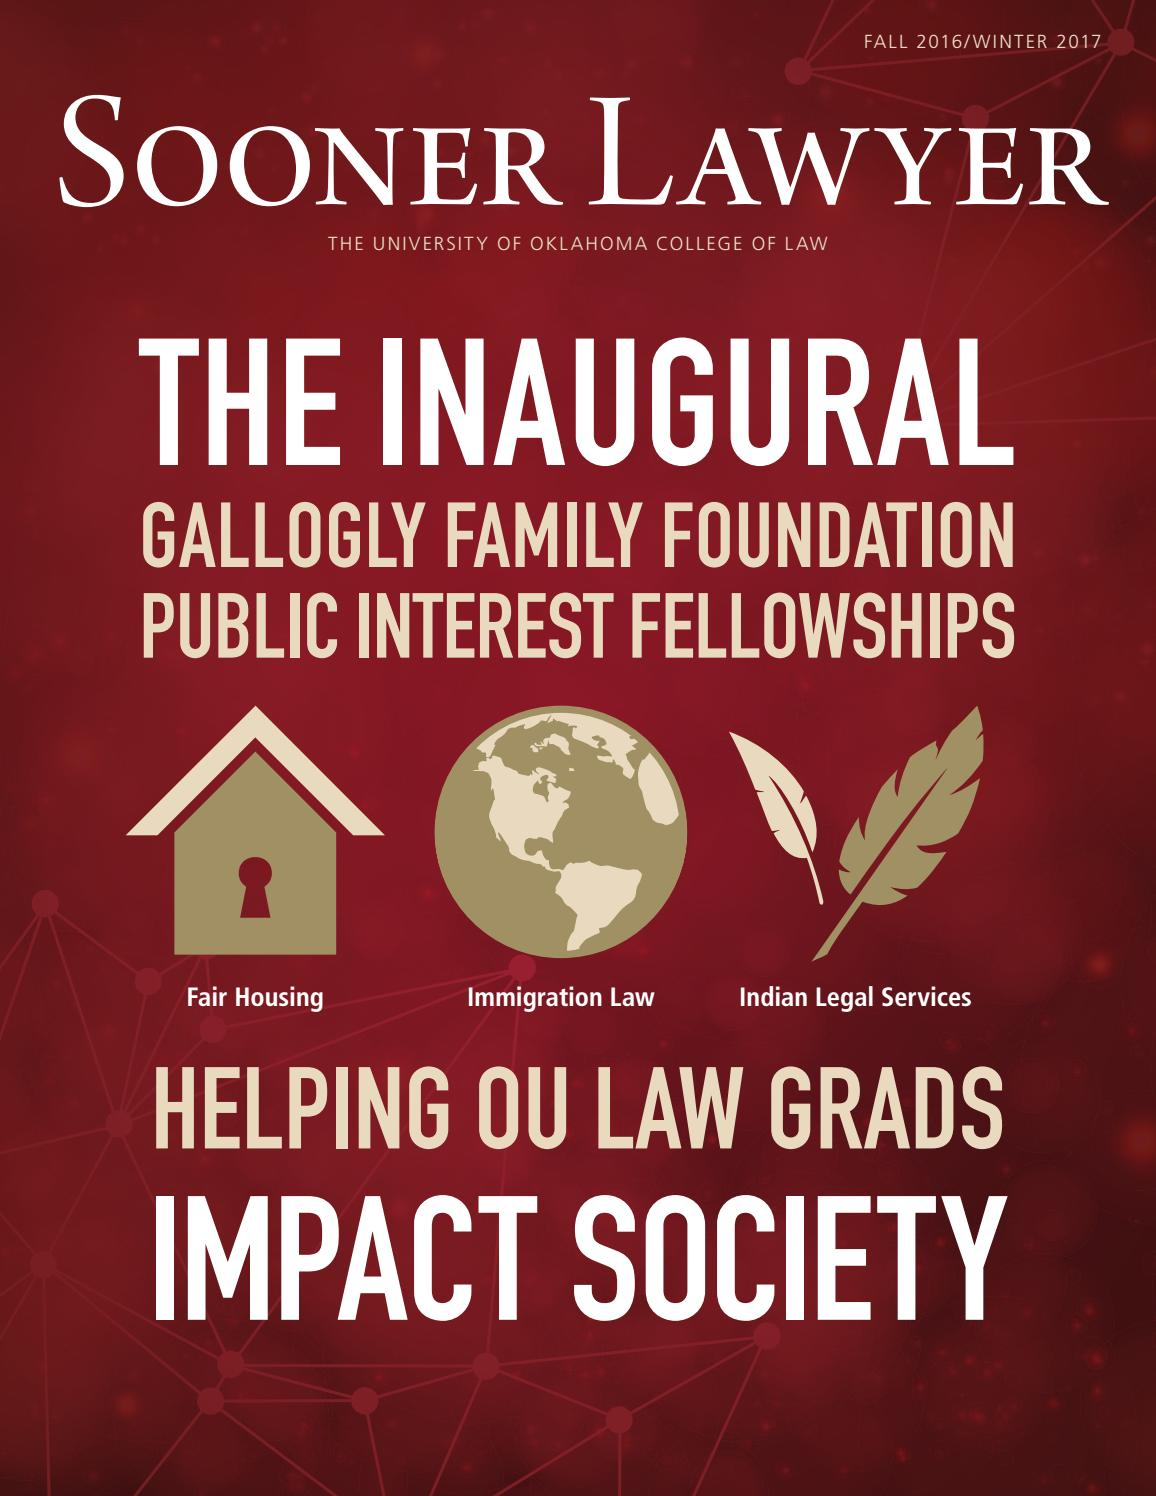 Sooner Lawyer: Fall 2016winter 2017 By University Of Oklahoma College Of  Law  Issuu